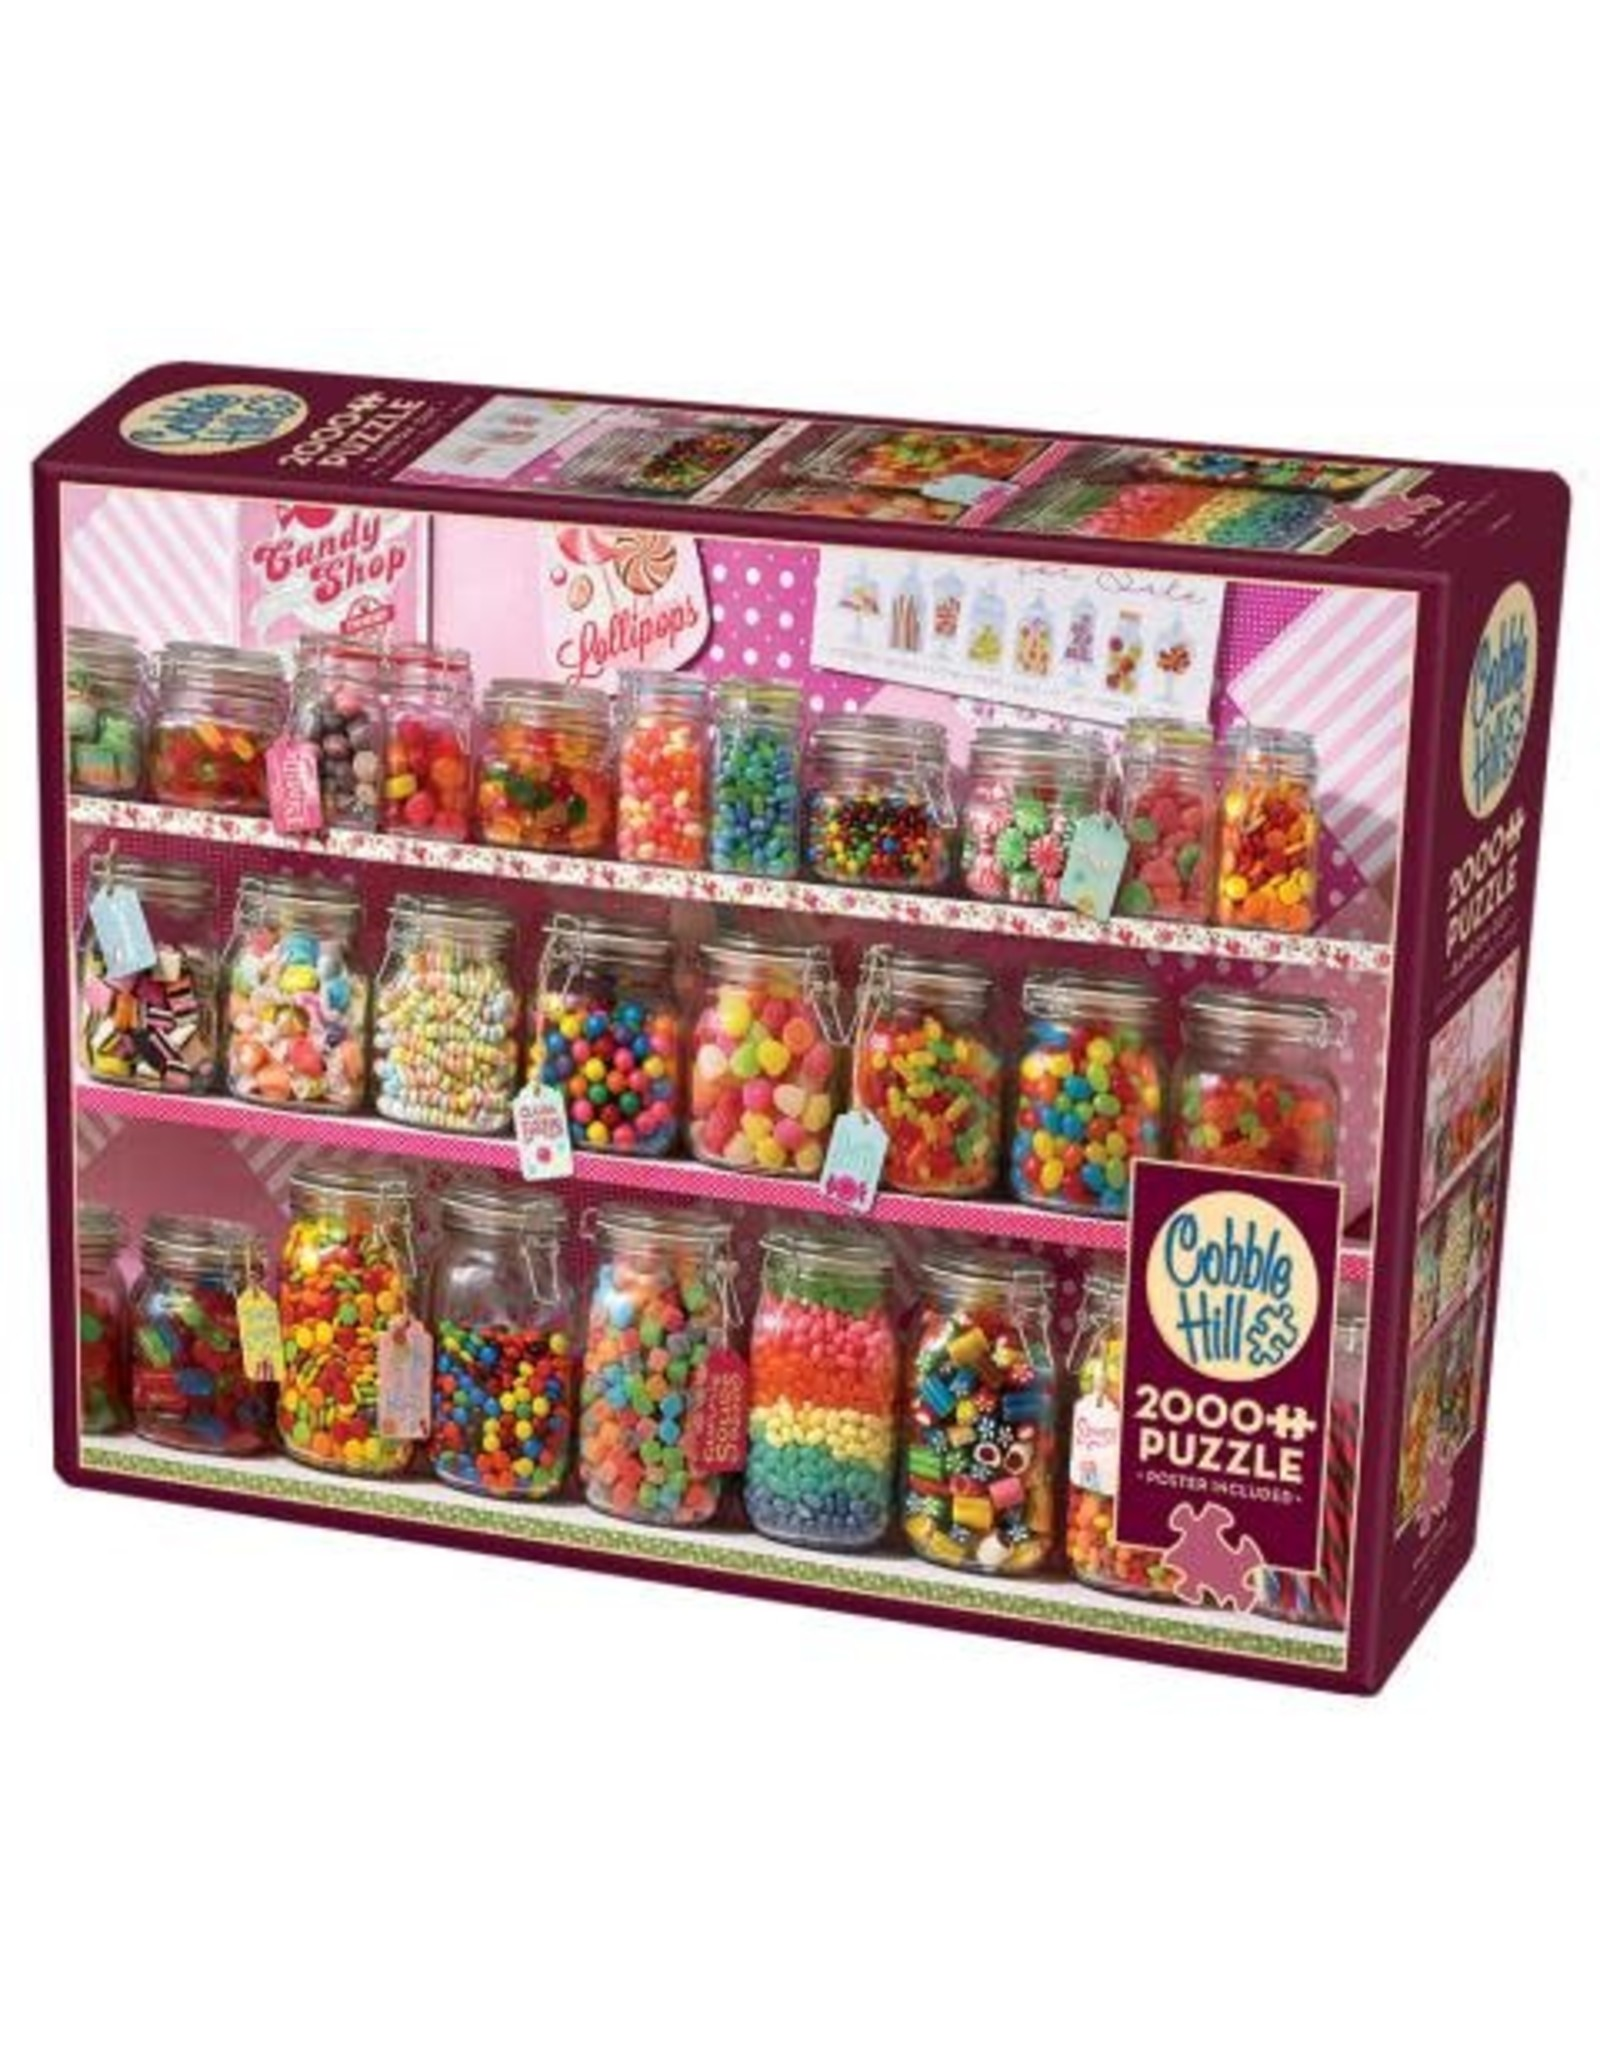 Cobble Hill Candy Store 2000pc Puzzle